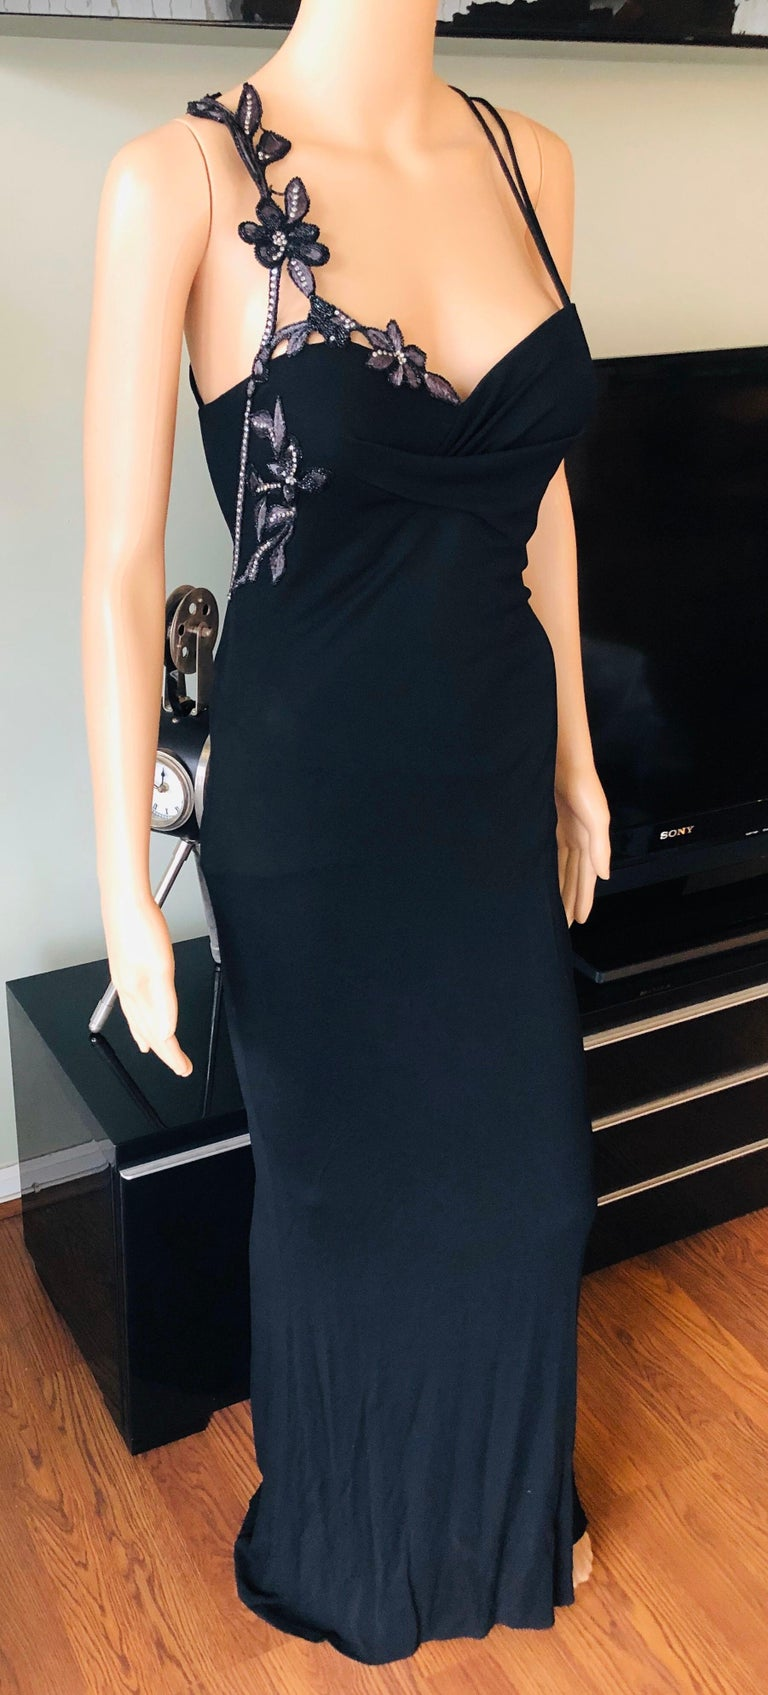 Black Atelier Versace by Gianni Versace Haute Couture Embellished Evening Dress Gown For Sale